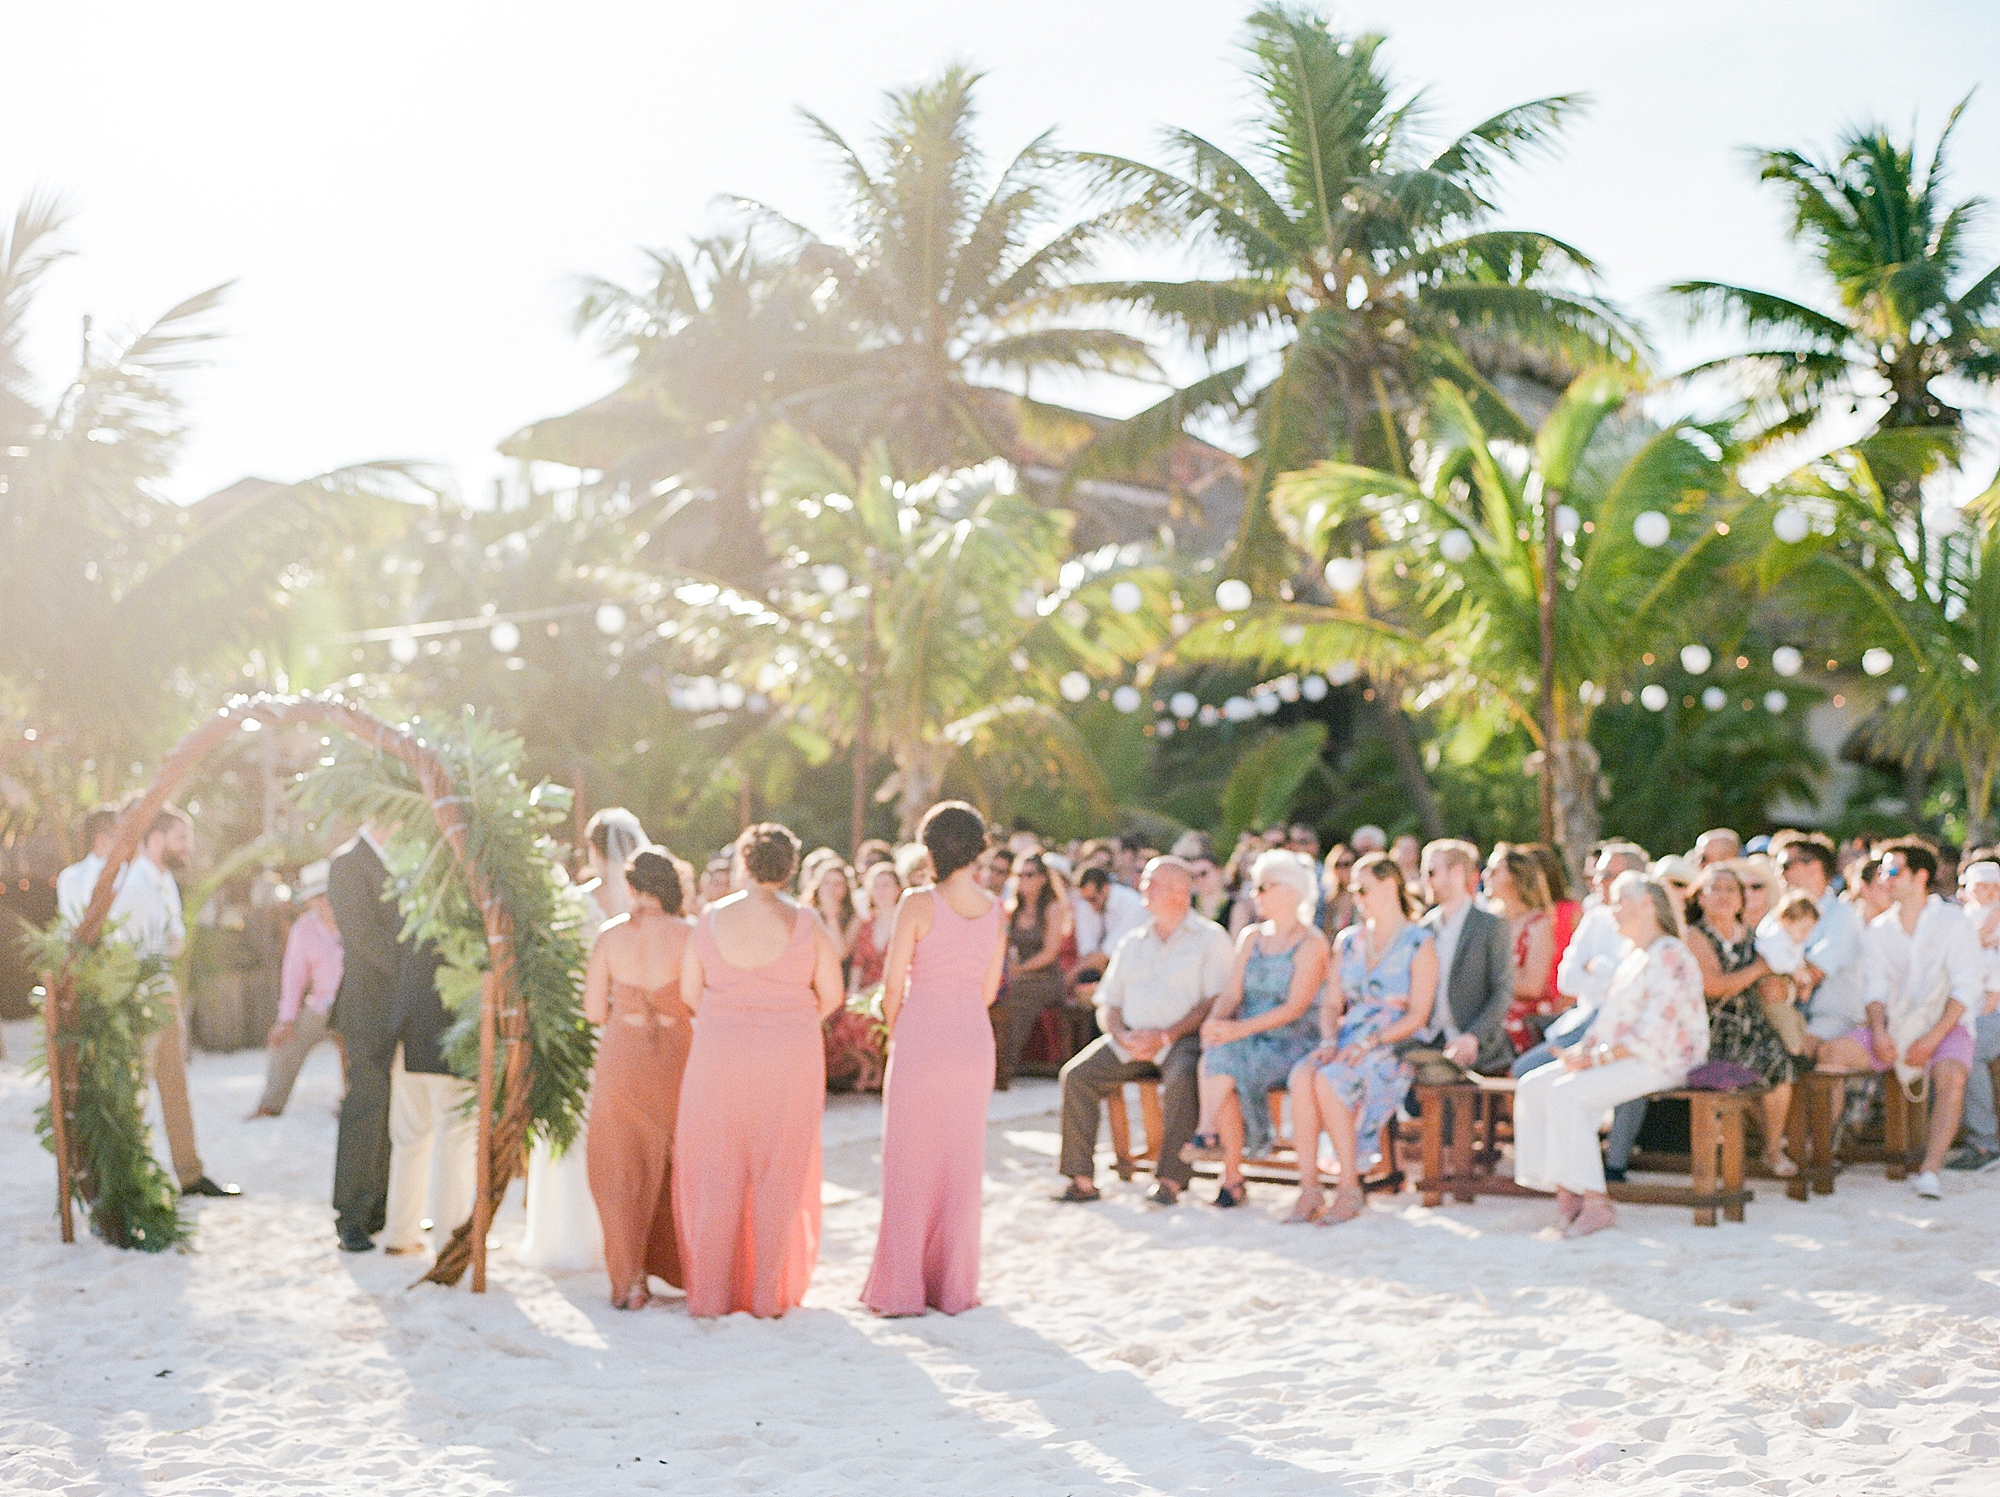 Stylish and Candid Destination Film Wedding Photography in Tulum Mexico by Magdalena Studios 0011